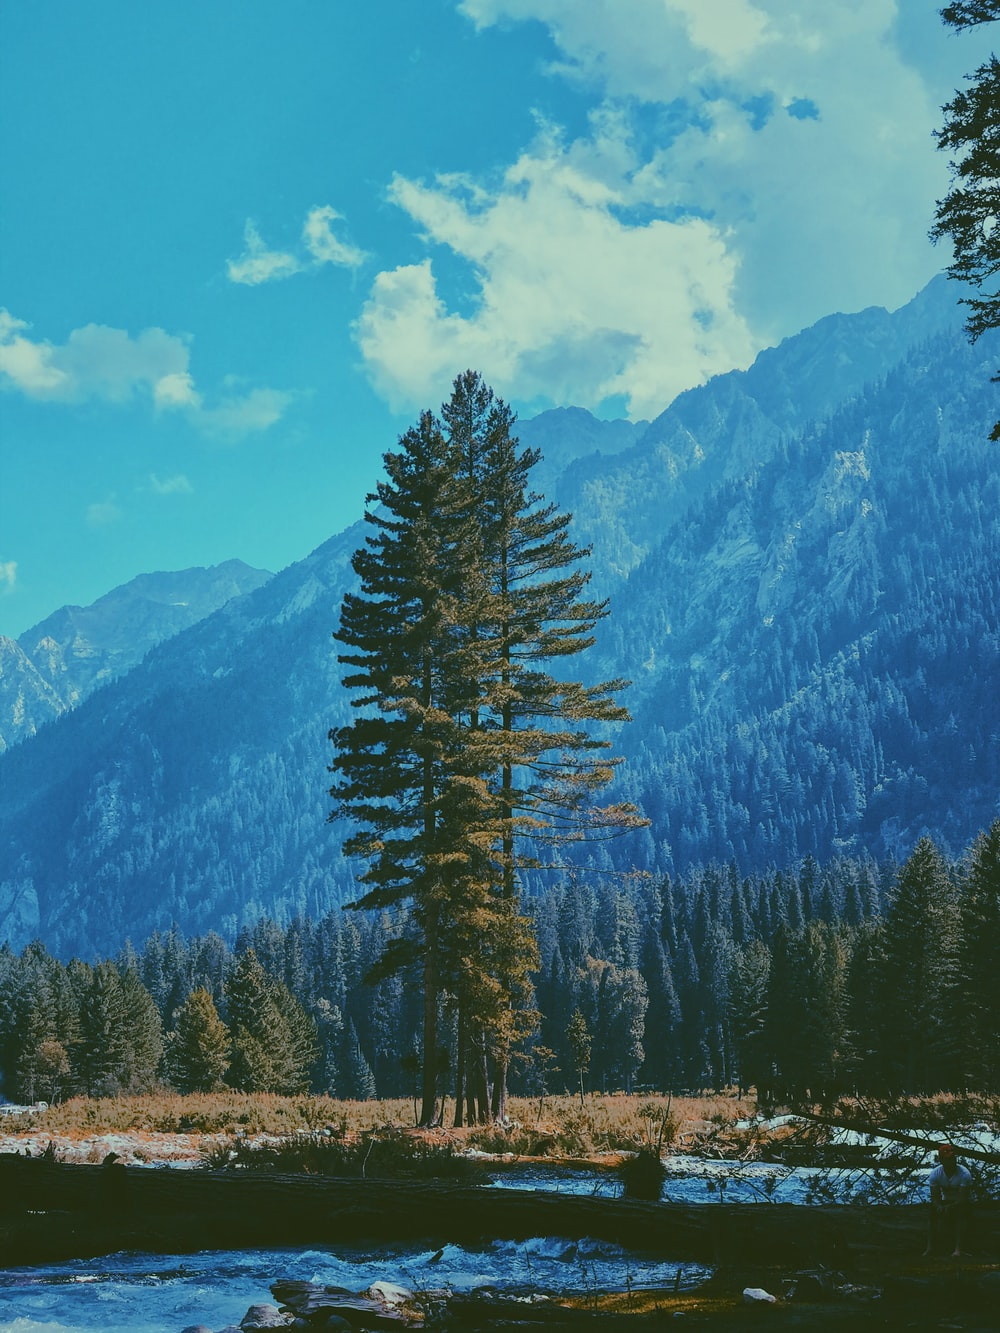 green pine tree on brown grass field near mountain under blue and white cloudy sky during